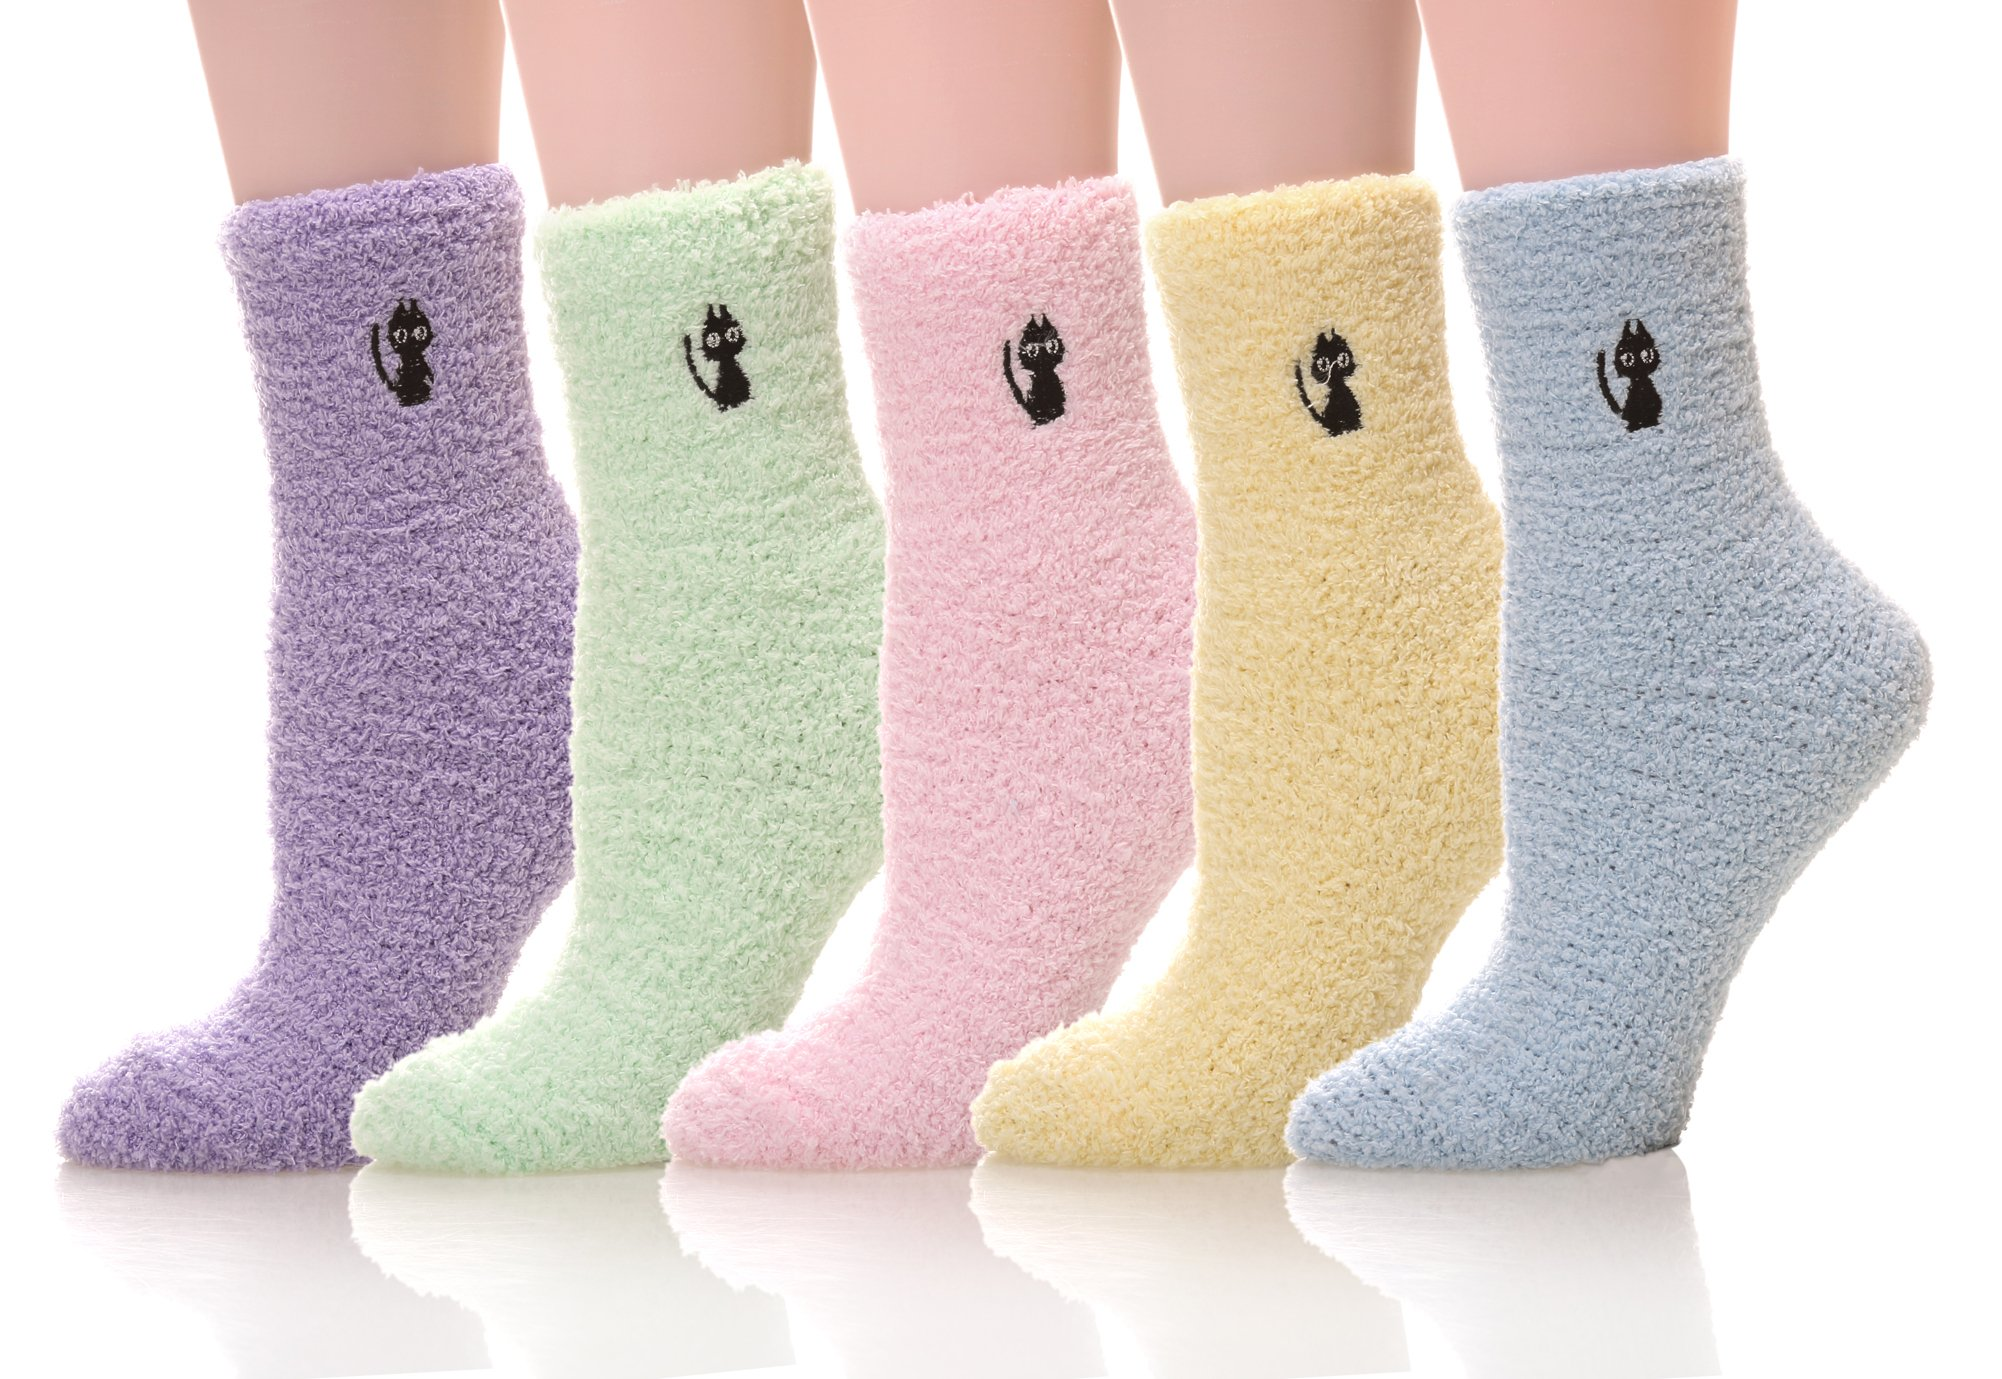 5 pairs Women's Super Soft Cozy Fuzzy Slipper Socks Microfiber Winter Warm Crew Home Socks